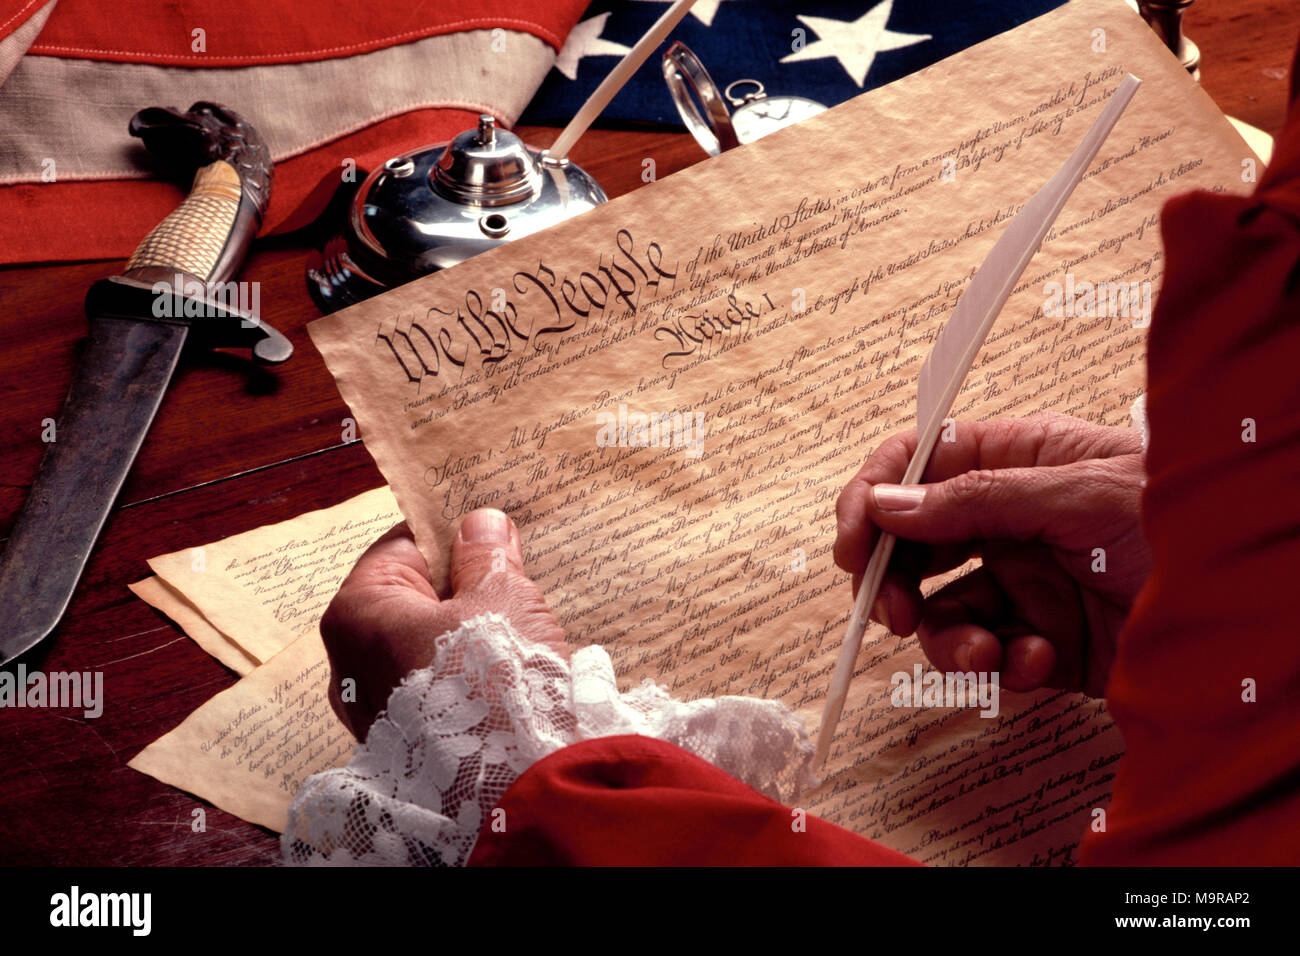 Re-creation of the signing of the Declaration of Independence - Stock Image